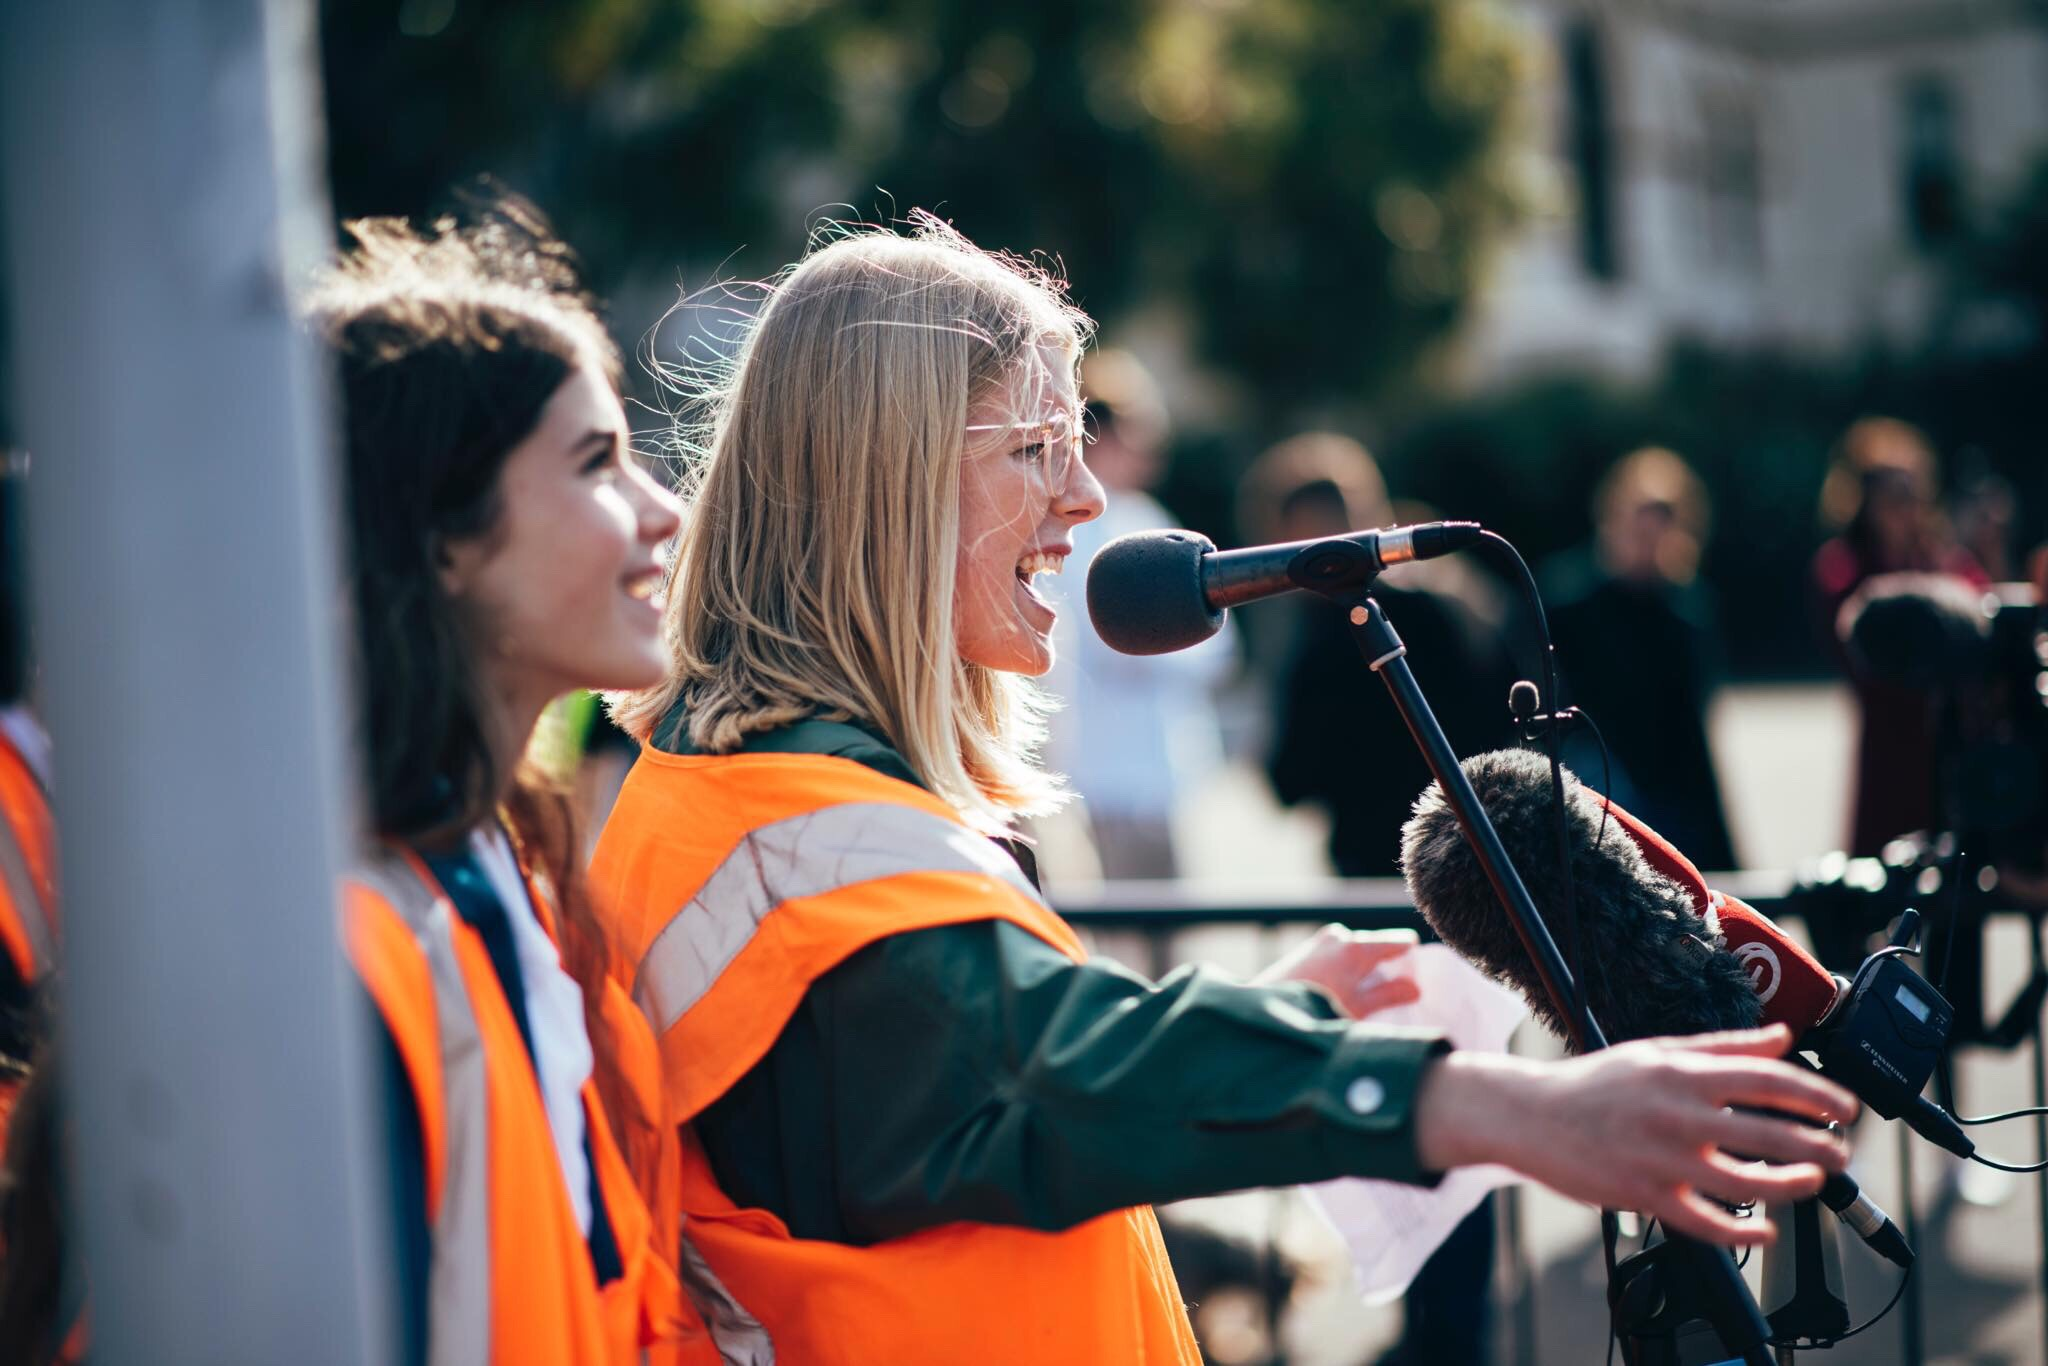 Young woman wearing high vis vest speaking to crowd